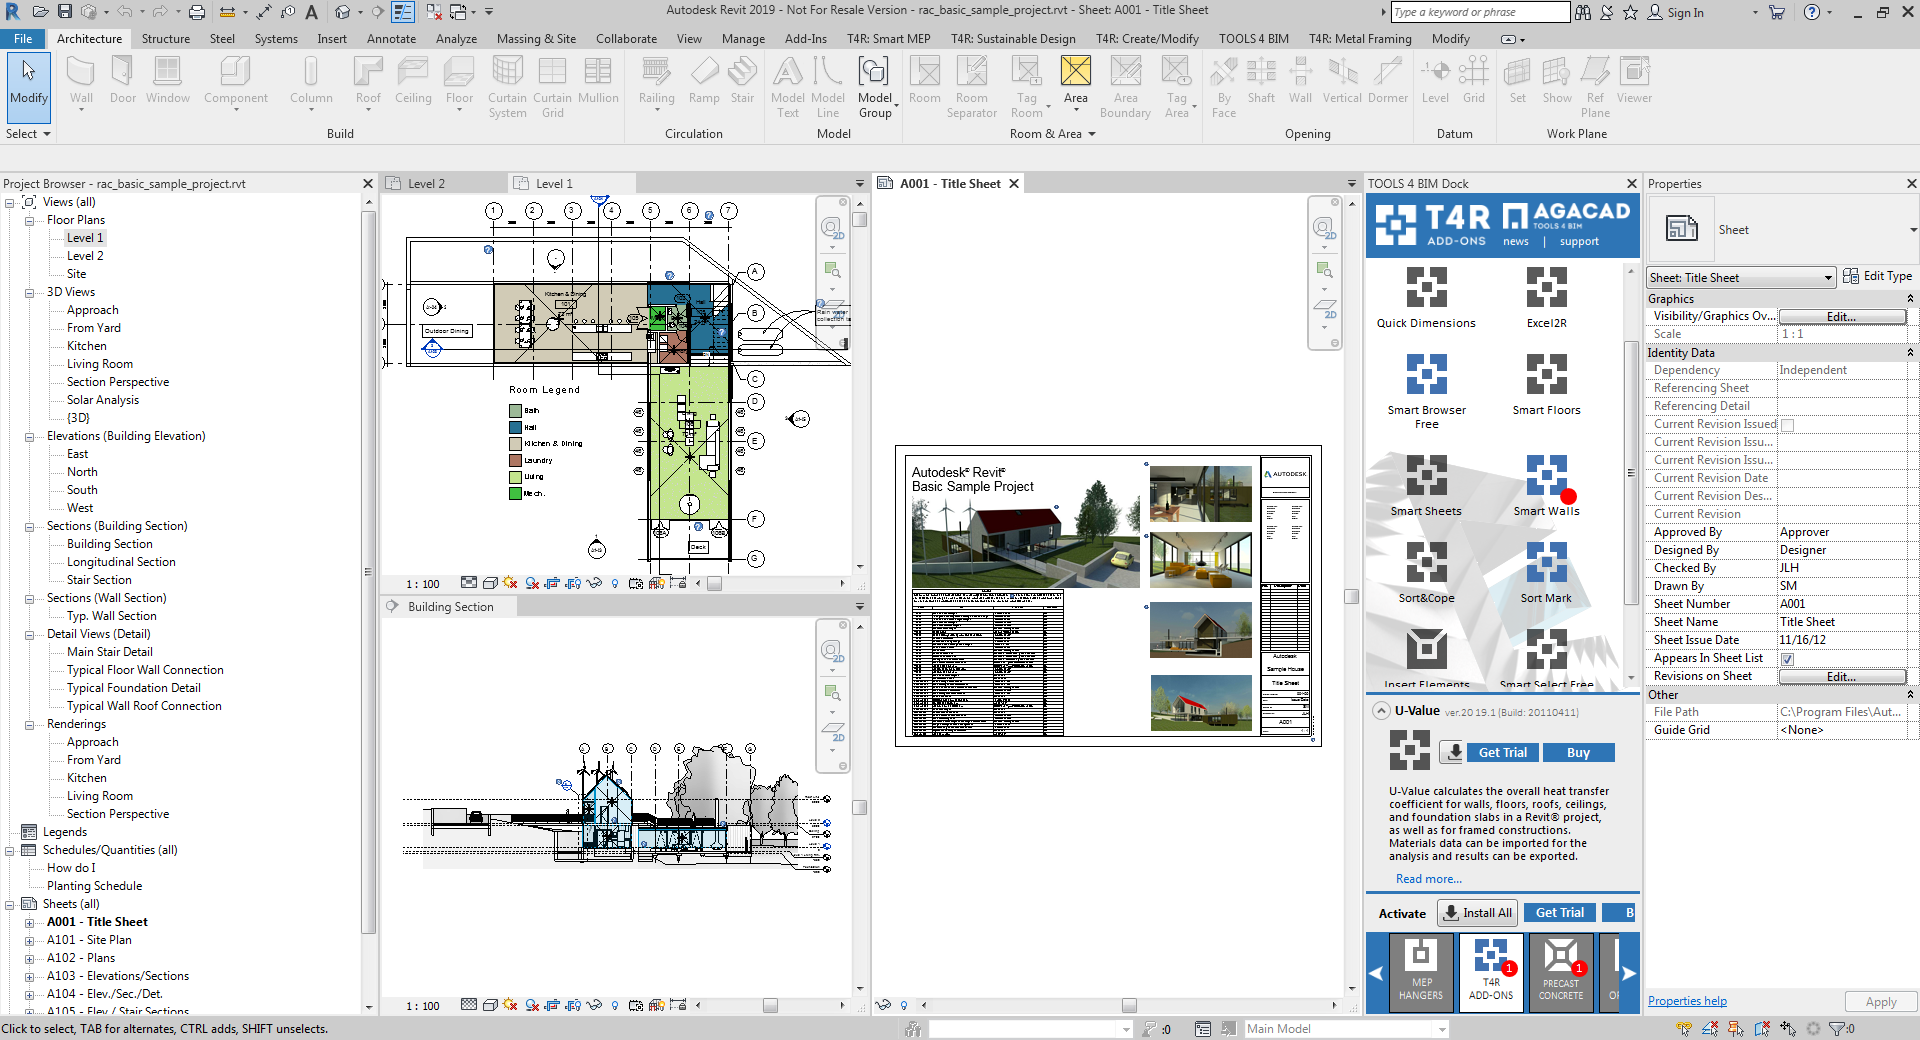 AGACAD Solutions Compatible with Revit 2019 Released! | AGACAD TOOLS4BIM